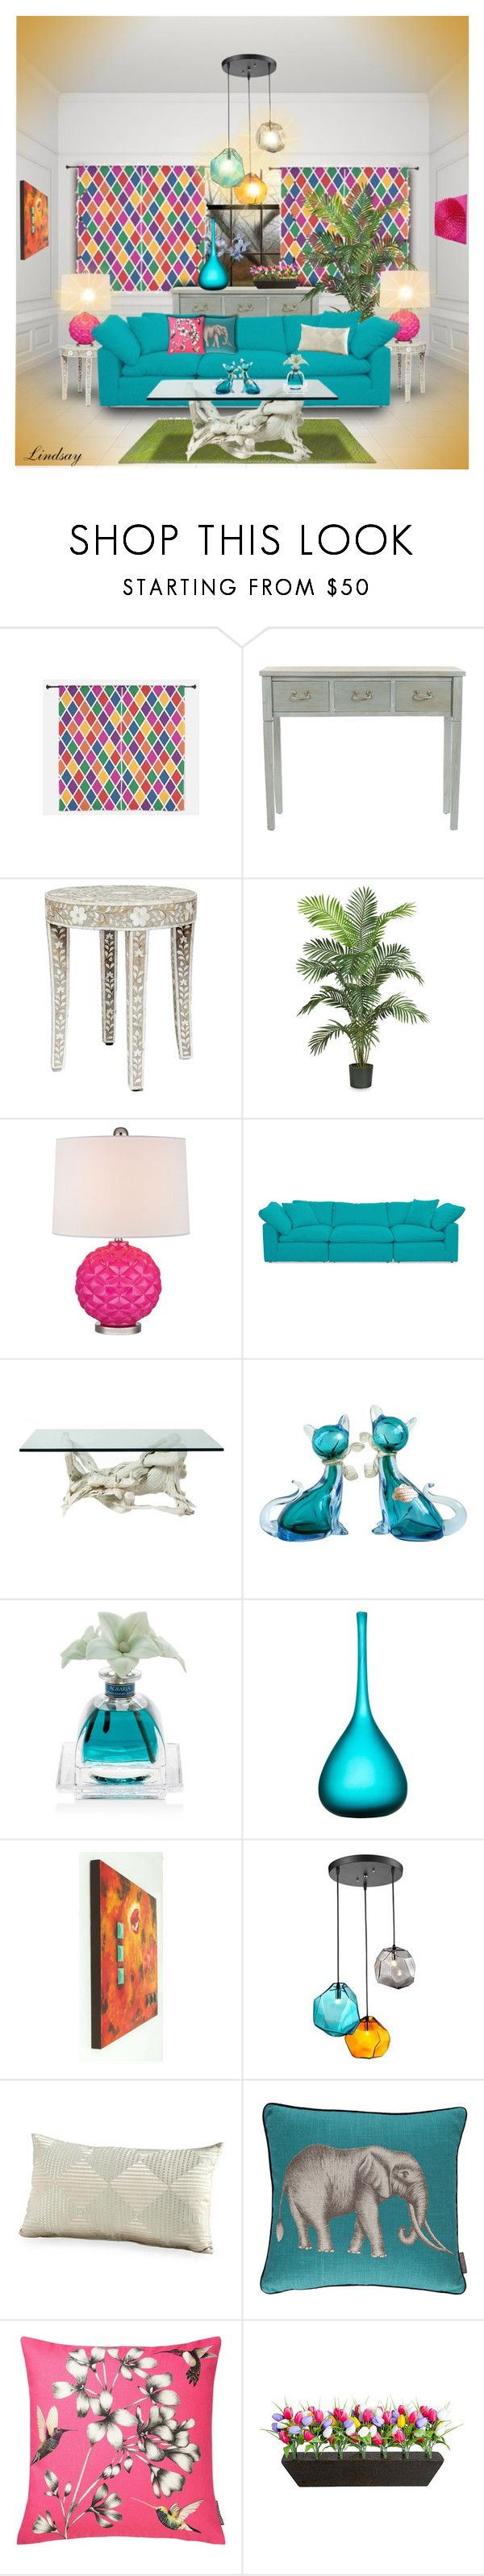 """""""Tricky Pattern: Harlequin"""" by lindsayd78 ❤ liked on Polyvore featuring interior, interiors, interior design, home, home decor, interior decorating, Nearly Natural, Lazy Susan, Joybird and Alfredo Barbini"""